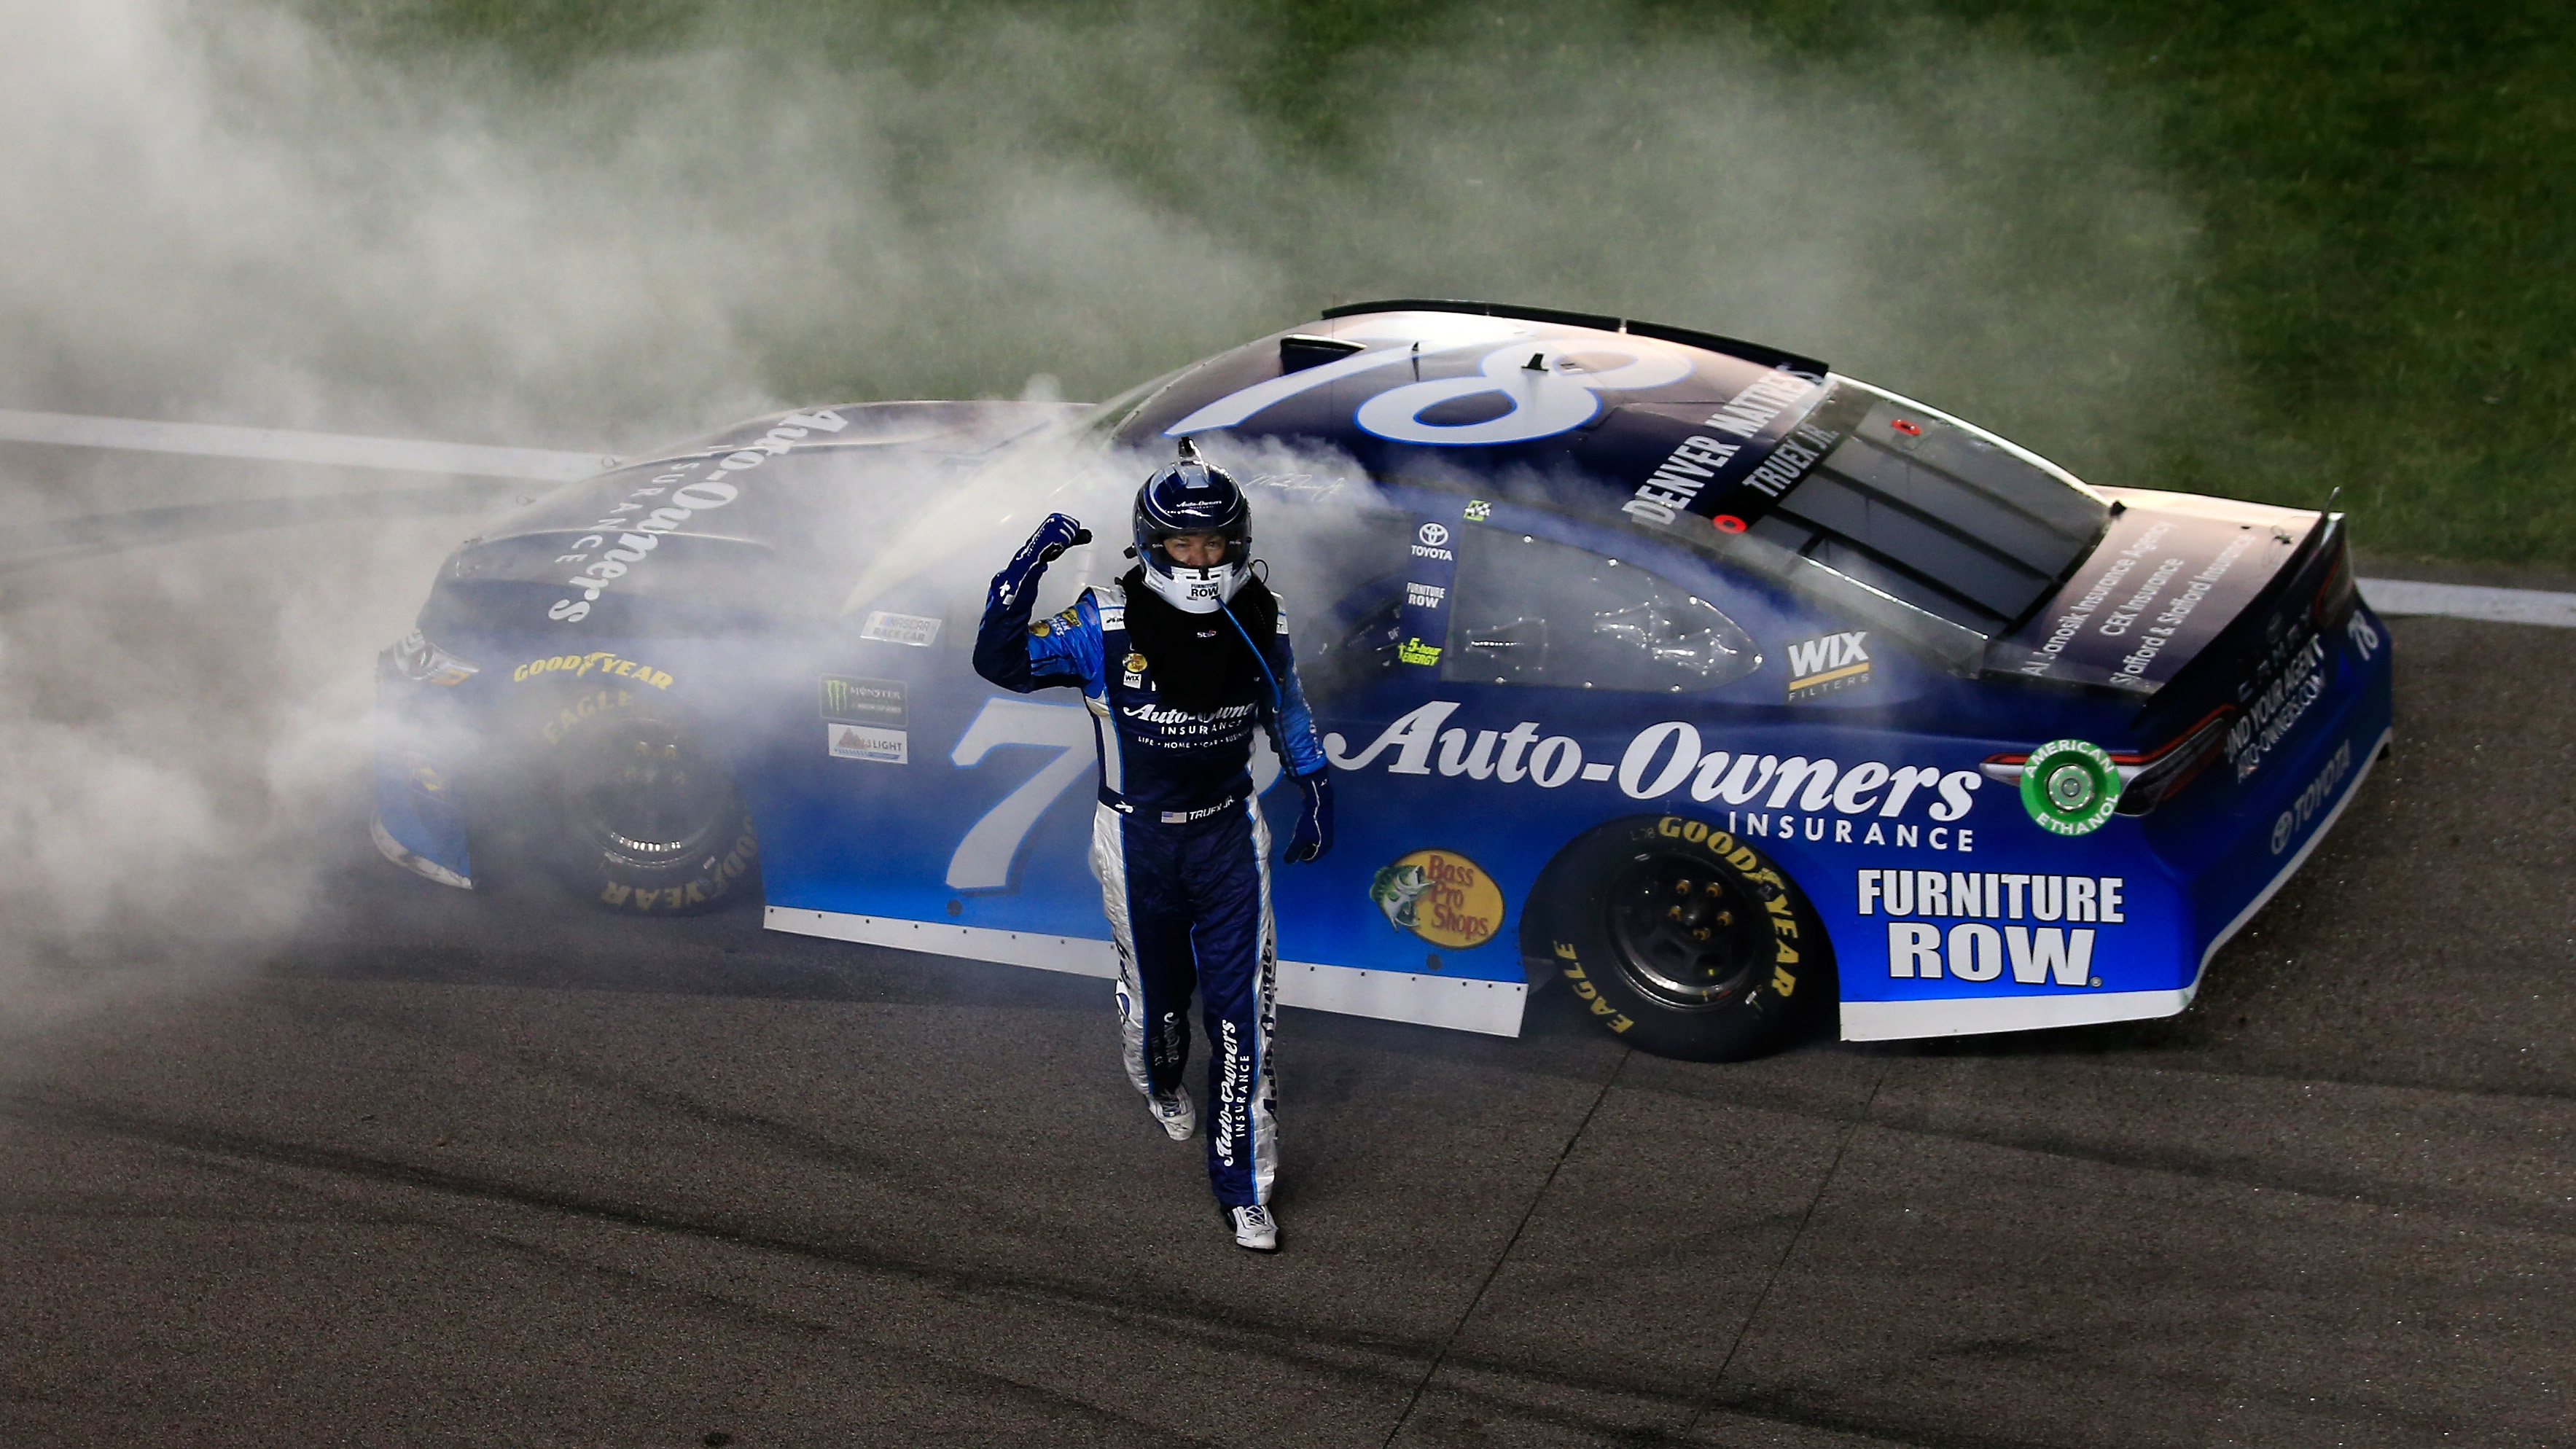 KANSAS CITY, KS - MAY 13:  Martin Truex Jr., driver of the #78 Auto-Owners Insurance Toyota, celebrates with a burnout after winning the Monster Energy NASCAR Cup Series Go Bowling 400 at Kansas Speedway on May 13, 2017 in Kansas City, Kansas.  (Photo by Chris Trotman/Getty Images)